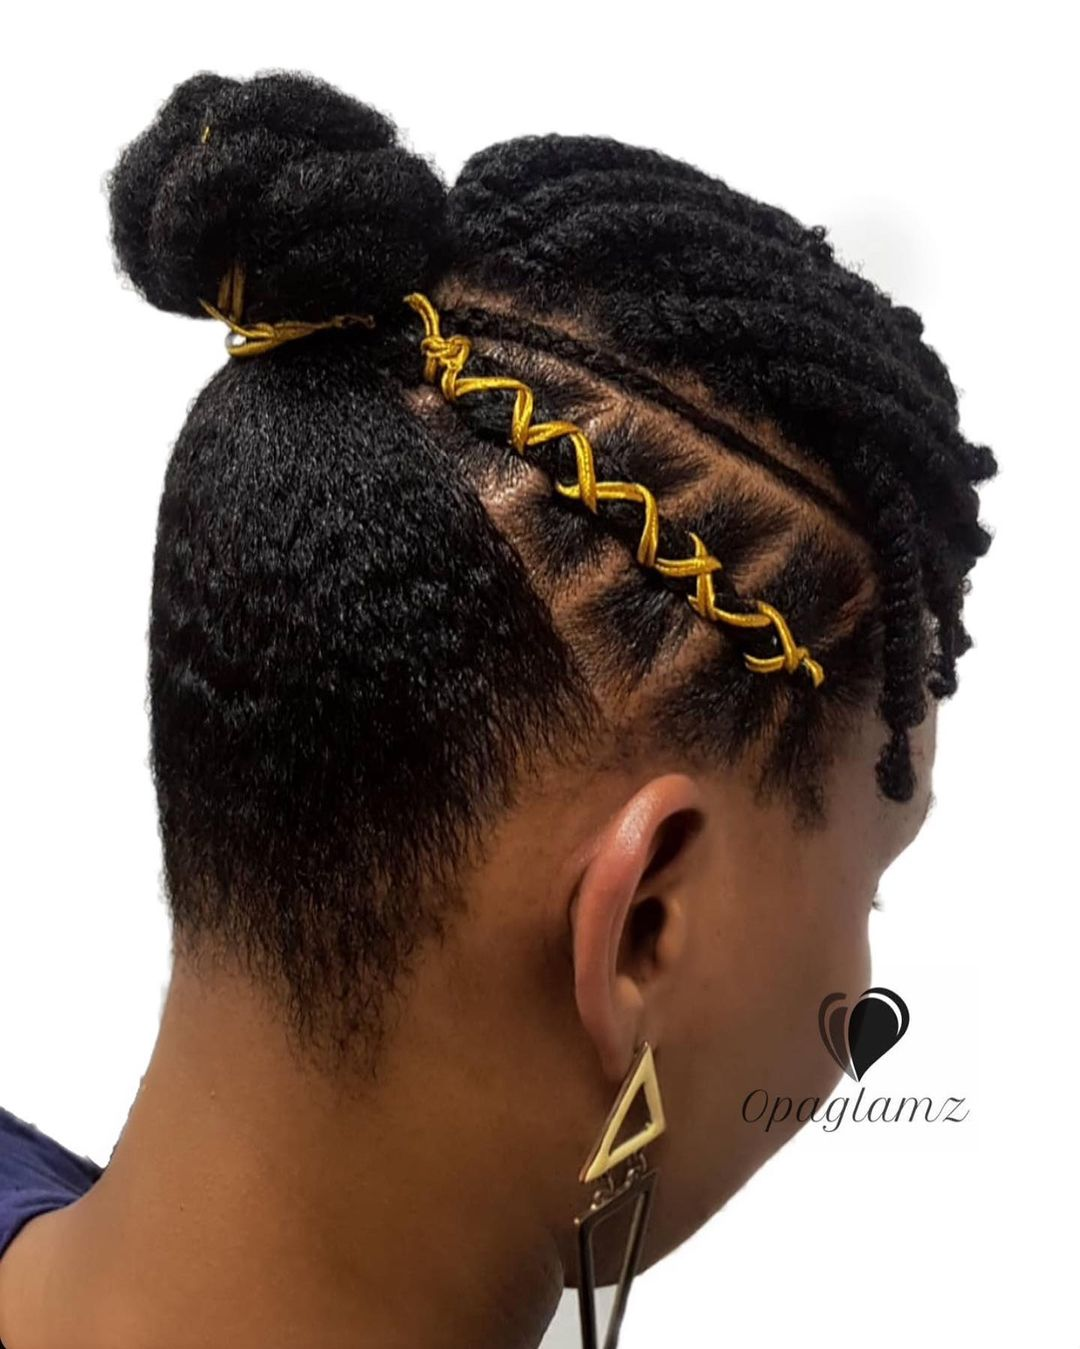 Black hairstyles for women NHP Approved